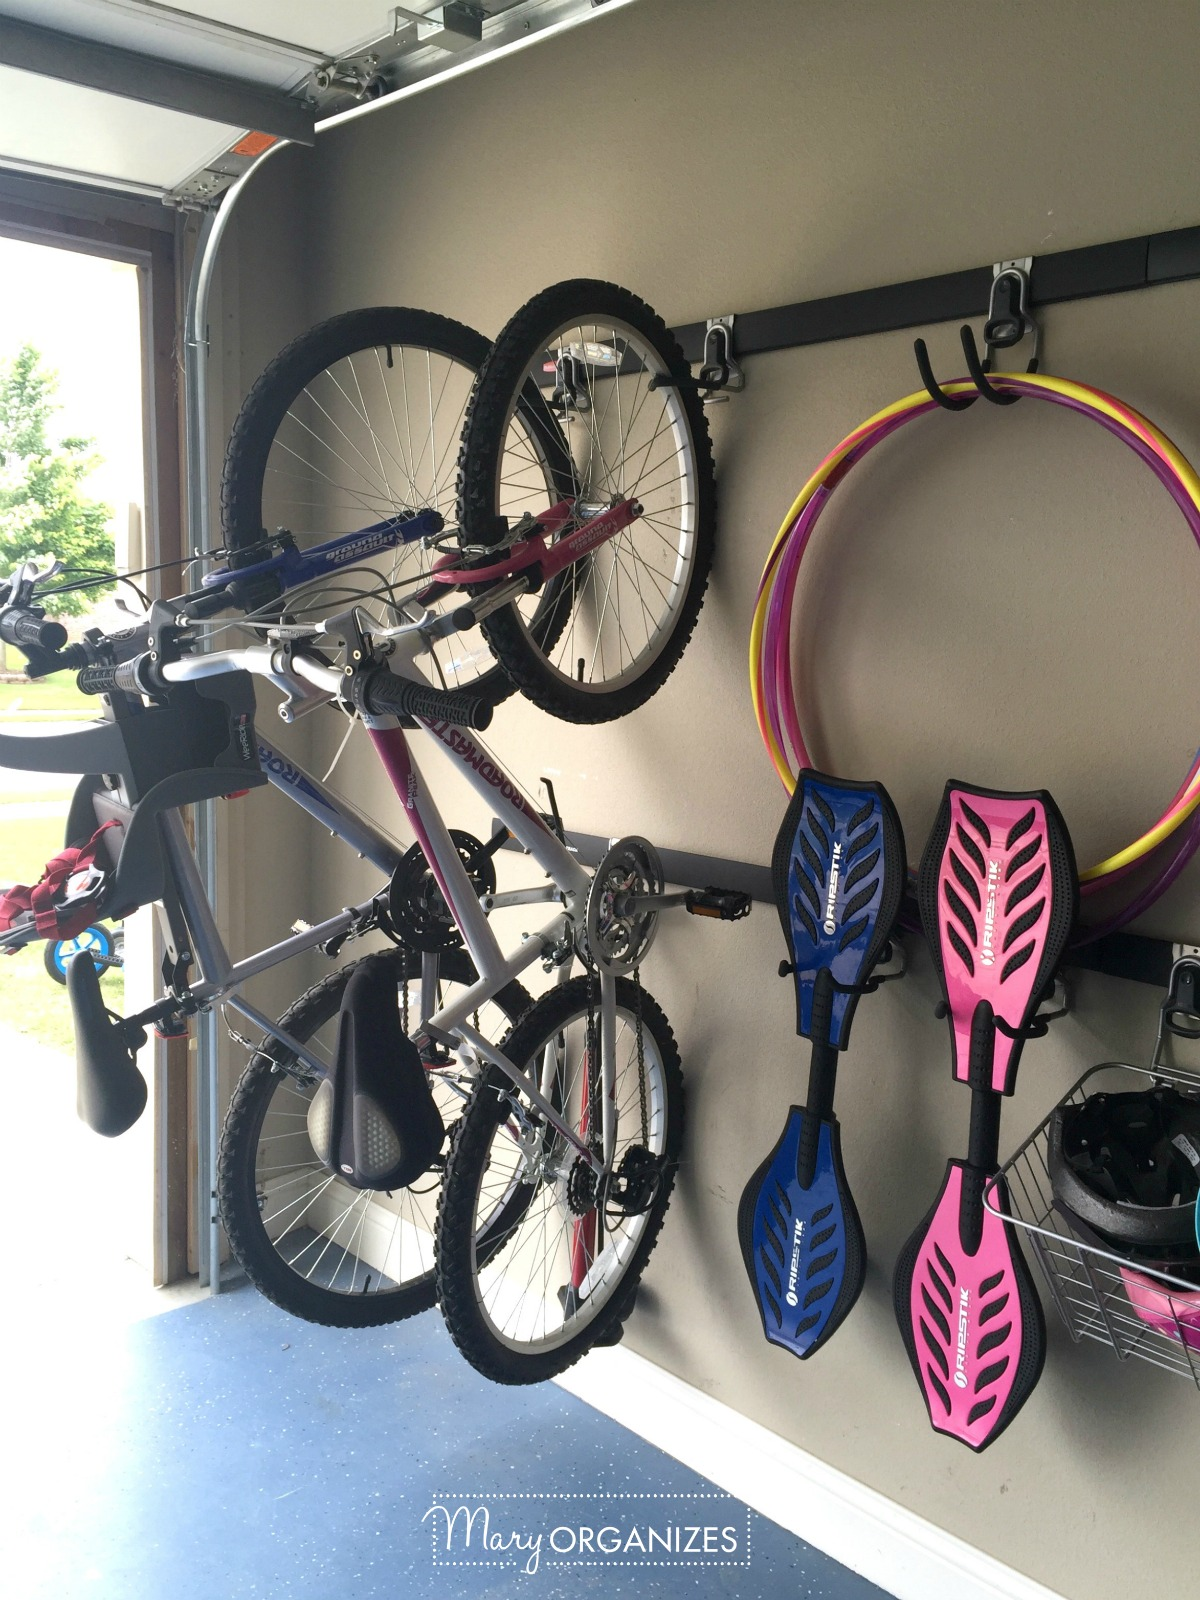 Garage Organizing How To Hang Bikes Scooters Ripsticks Balls More Creatingmaryshome Com